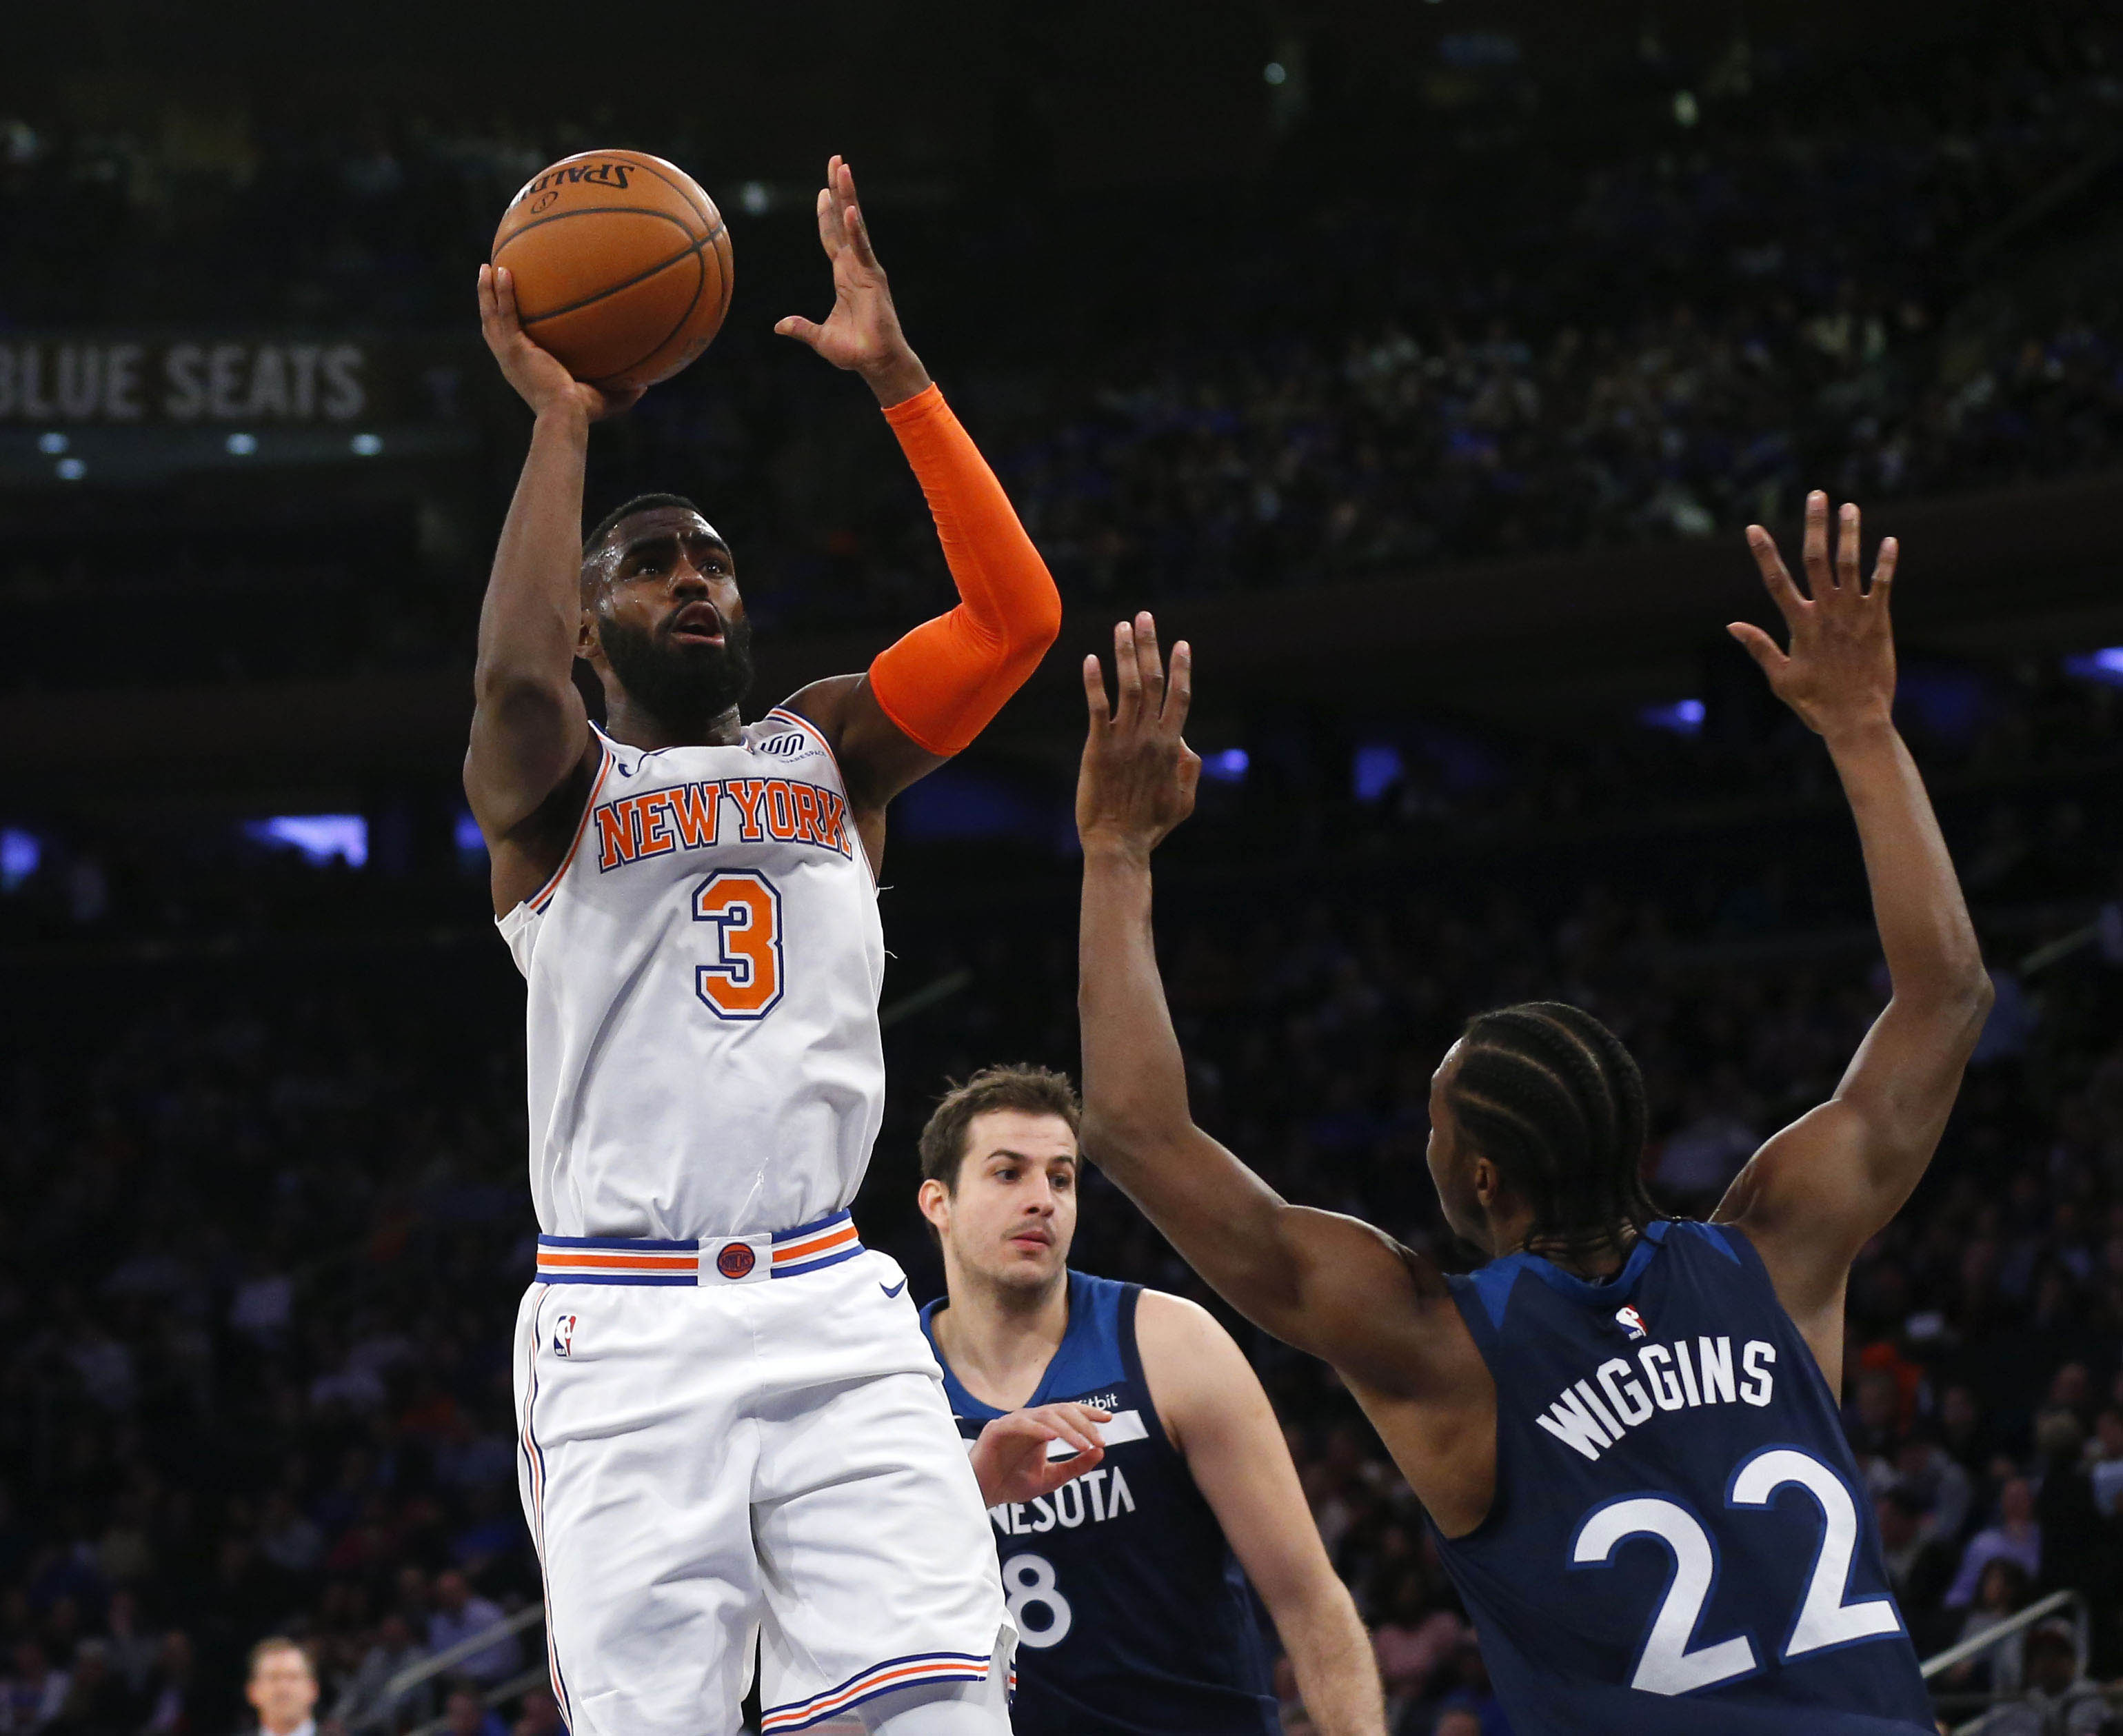 Big Night By Tim Hardaway Jr. Not Enough To Solve Knicks' Defensive Woes